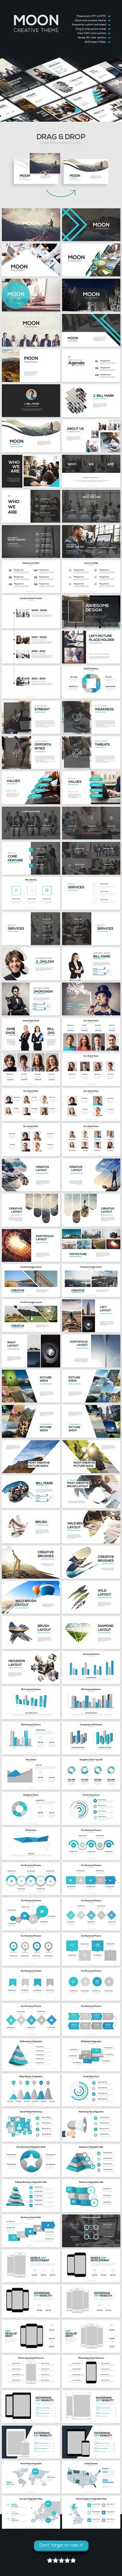 Moon Killer Powerpoint Template • Only available here ➝ http://graphicriver.net/item/moon-creative-theme/16281844?ref=pxcr